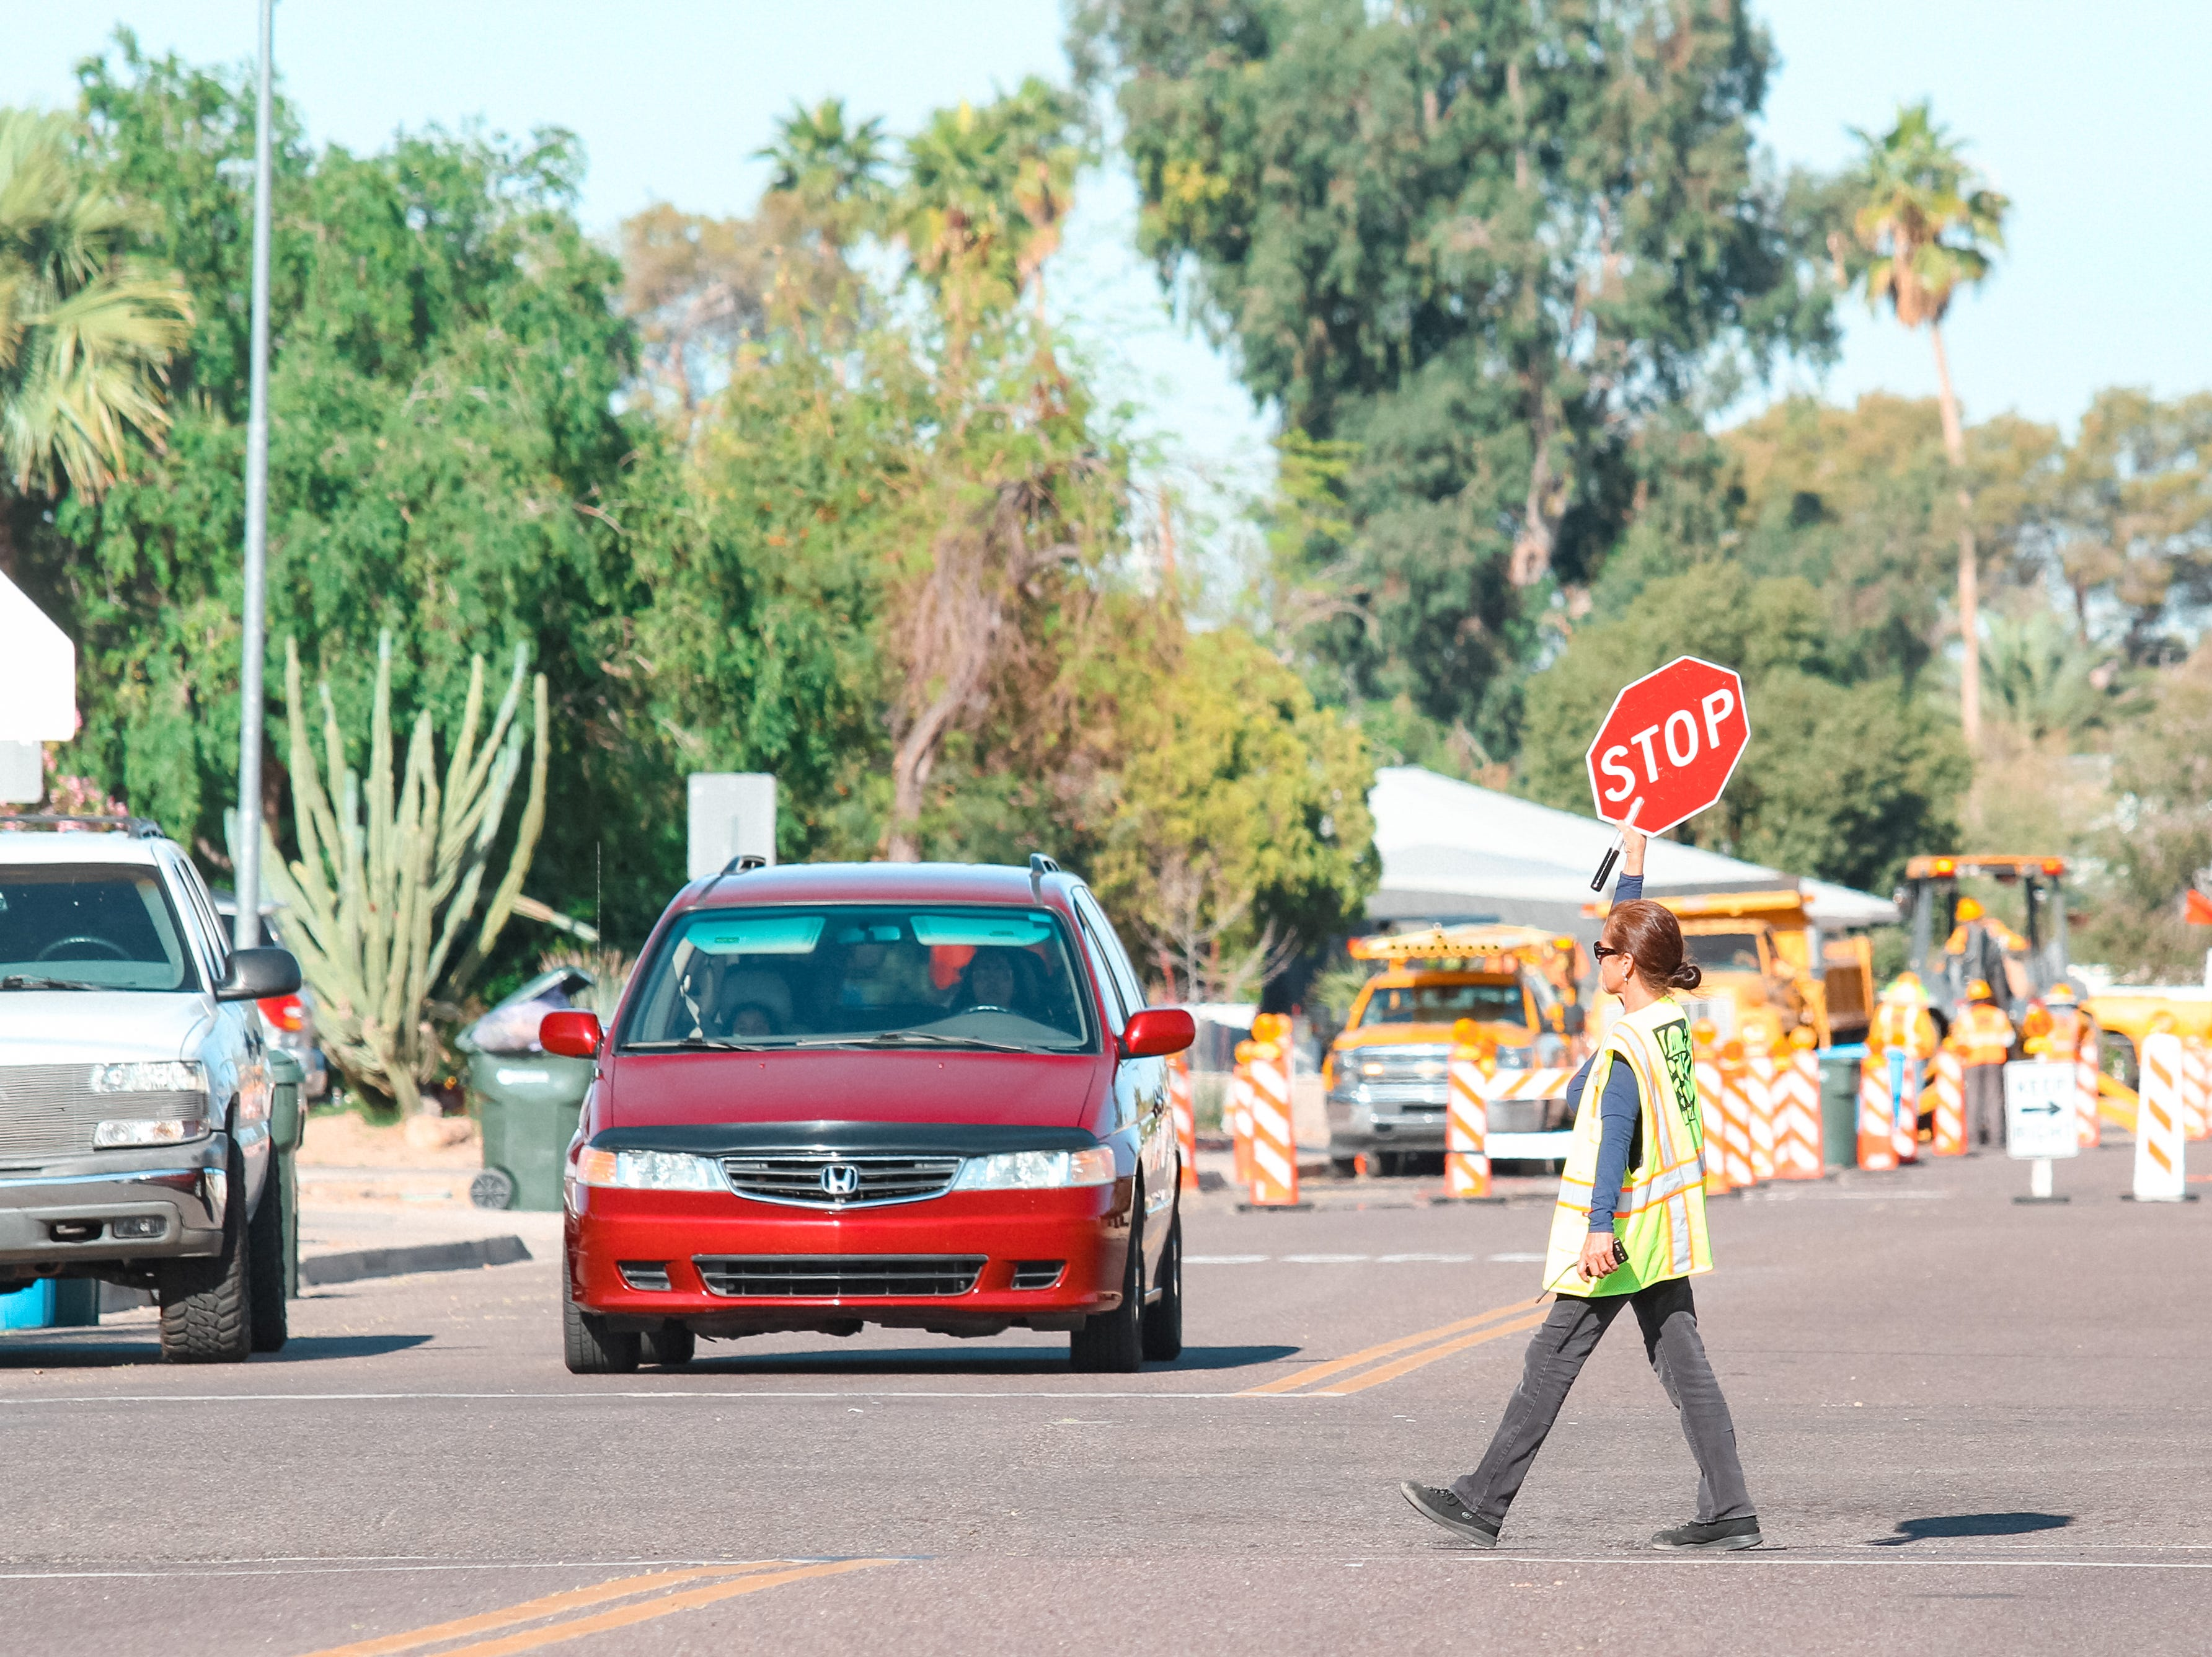 Children walk to school at Village Meadows Elementary School on April 9, 2019 days after an attempted kidnapping near the school in north Phoenix.